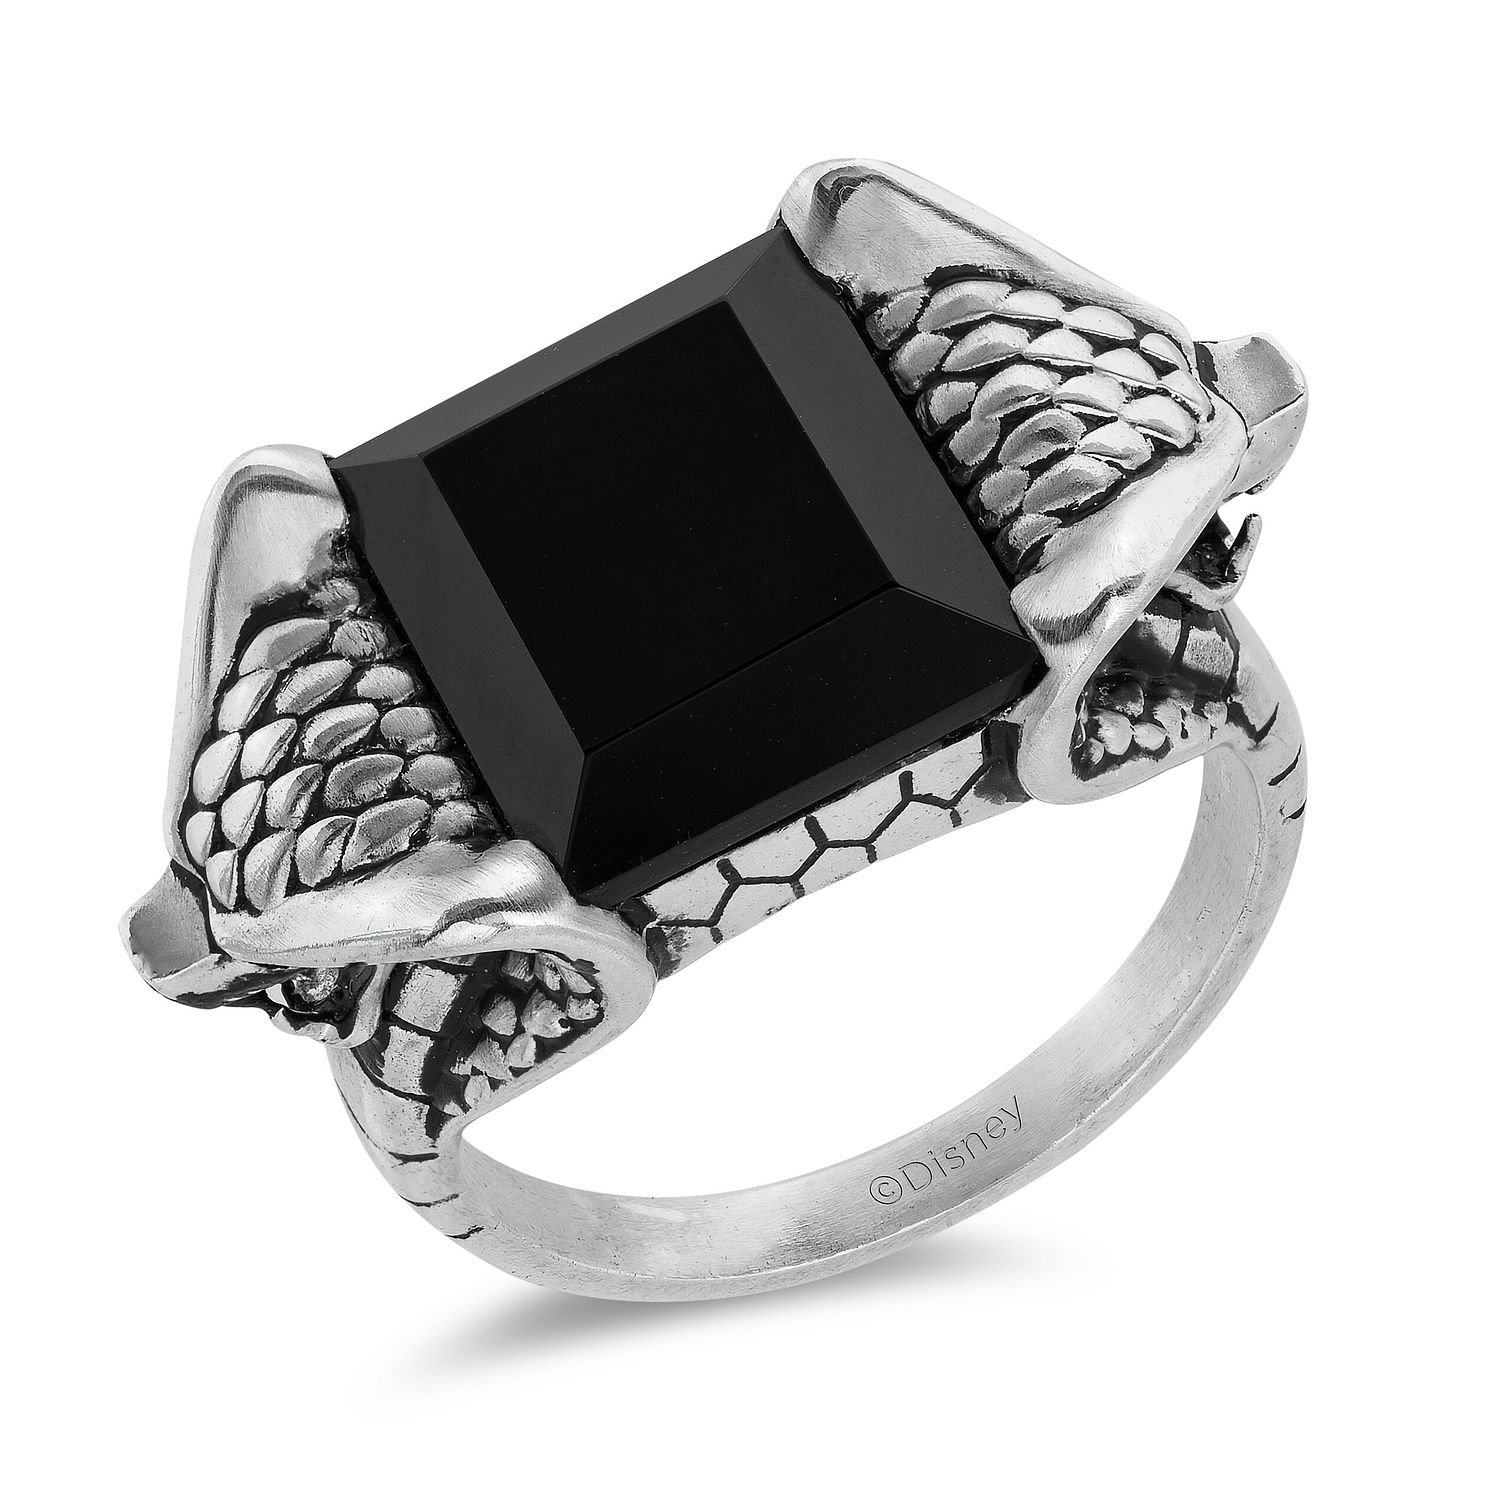 Enchanted Disney Fine Jewelry Silver Onyx Ring - Product number 4859545